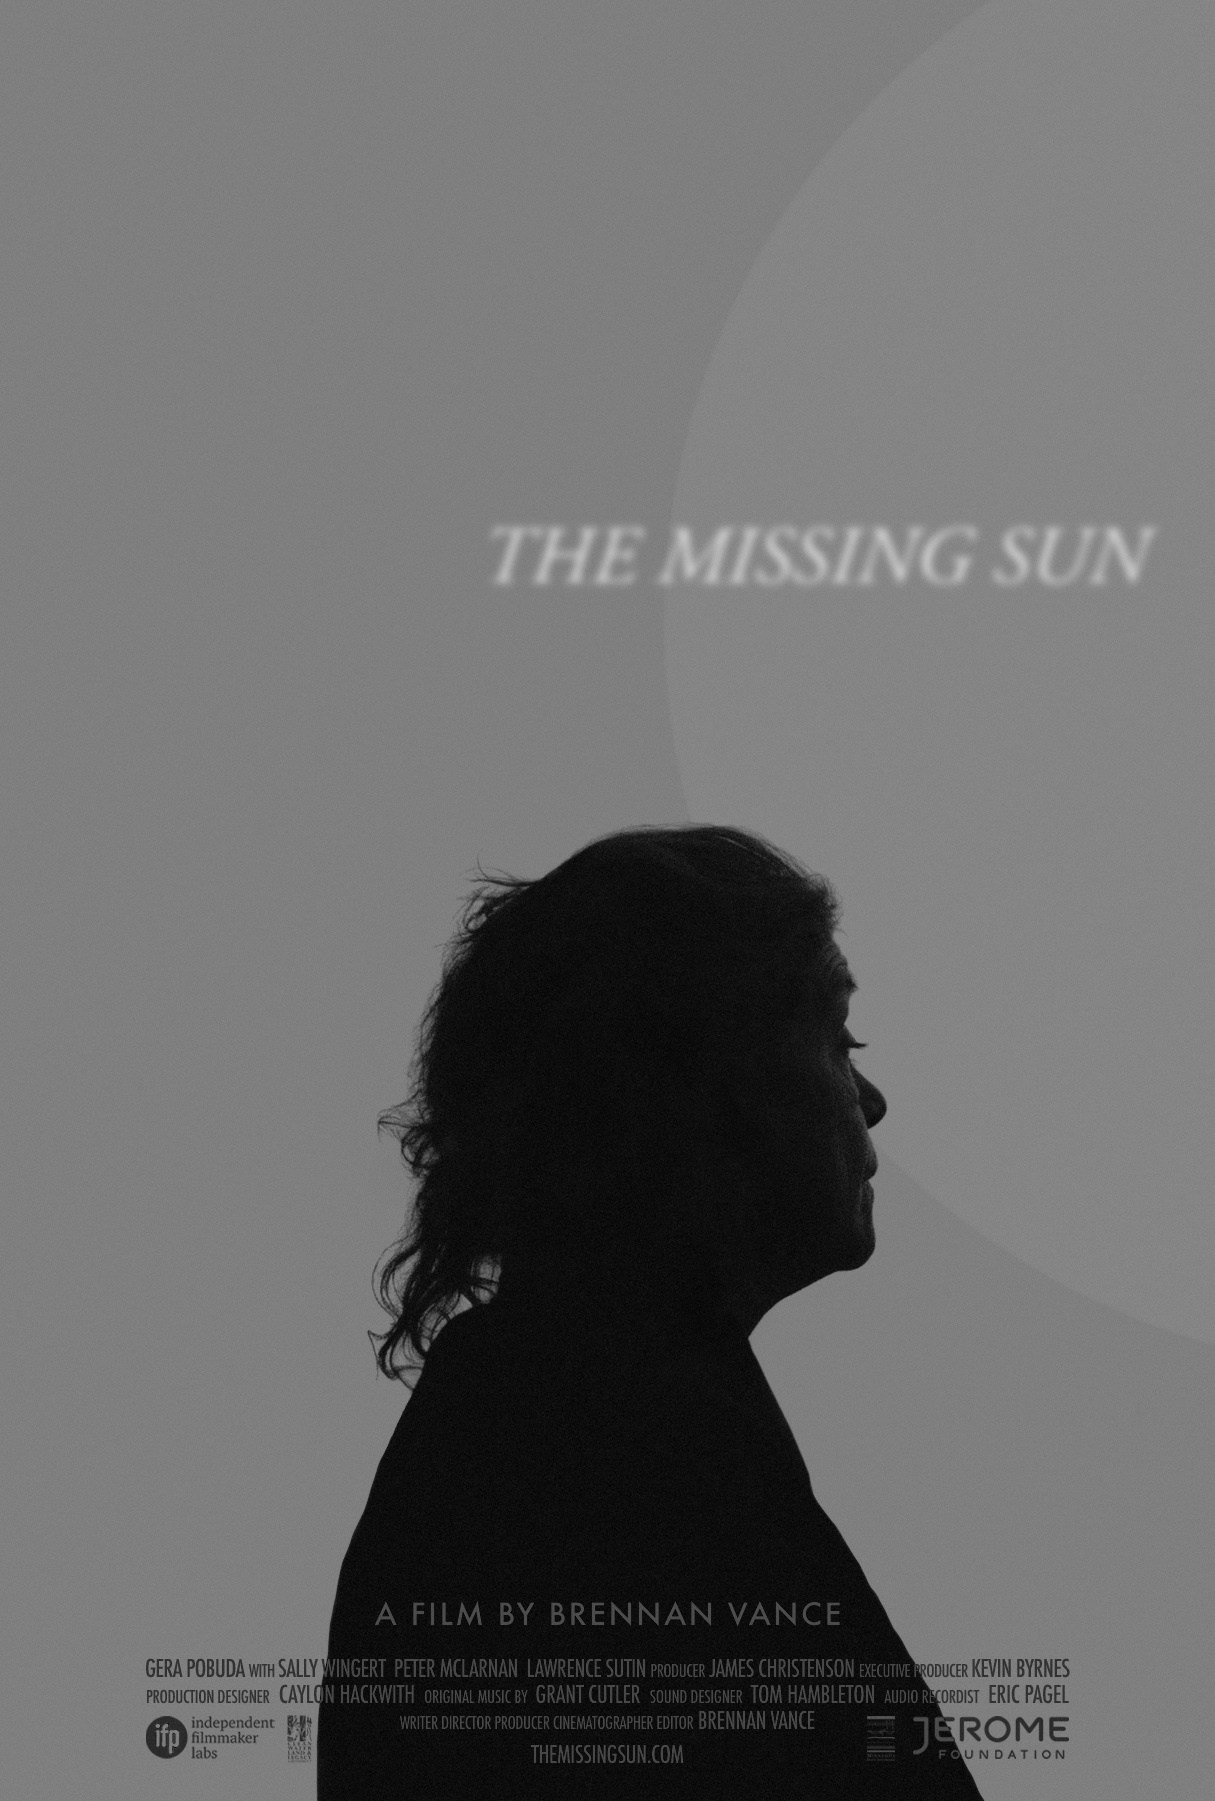 The Missing Sun feature length film